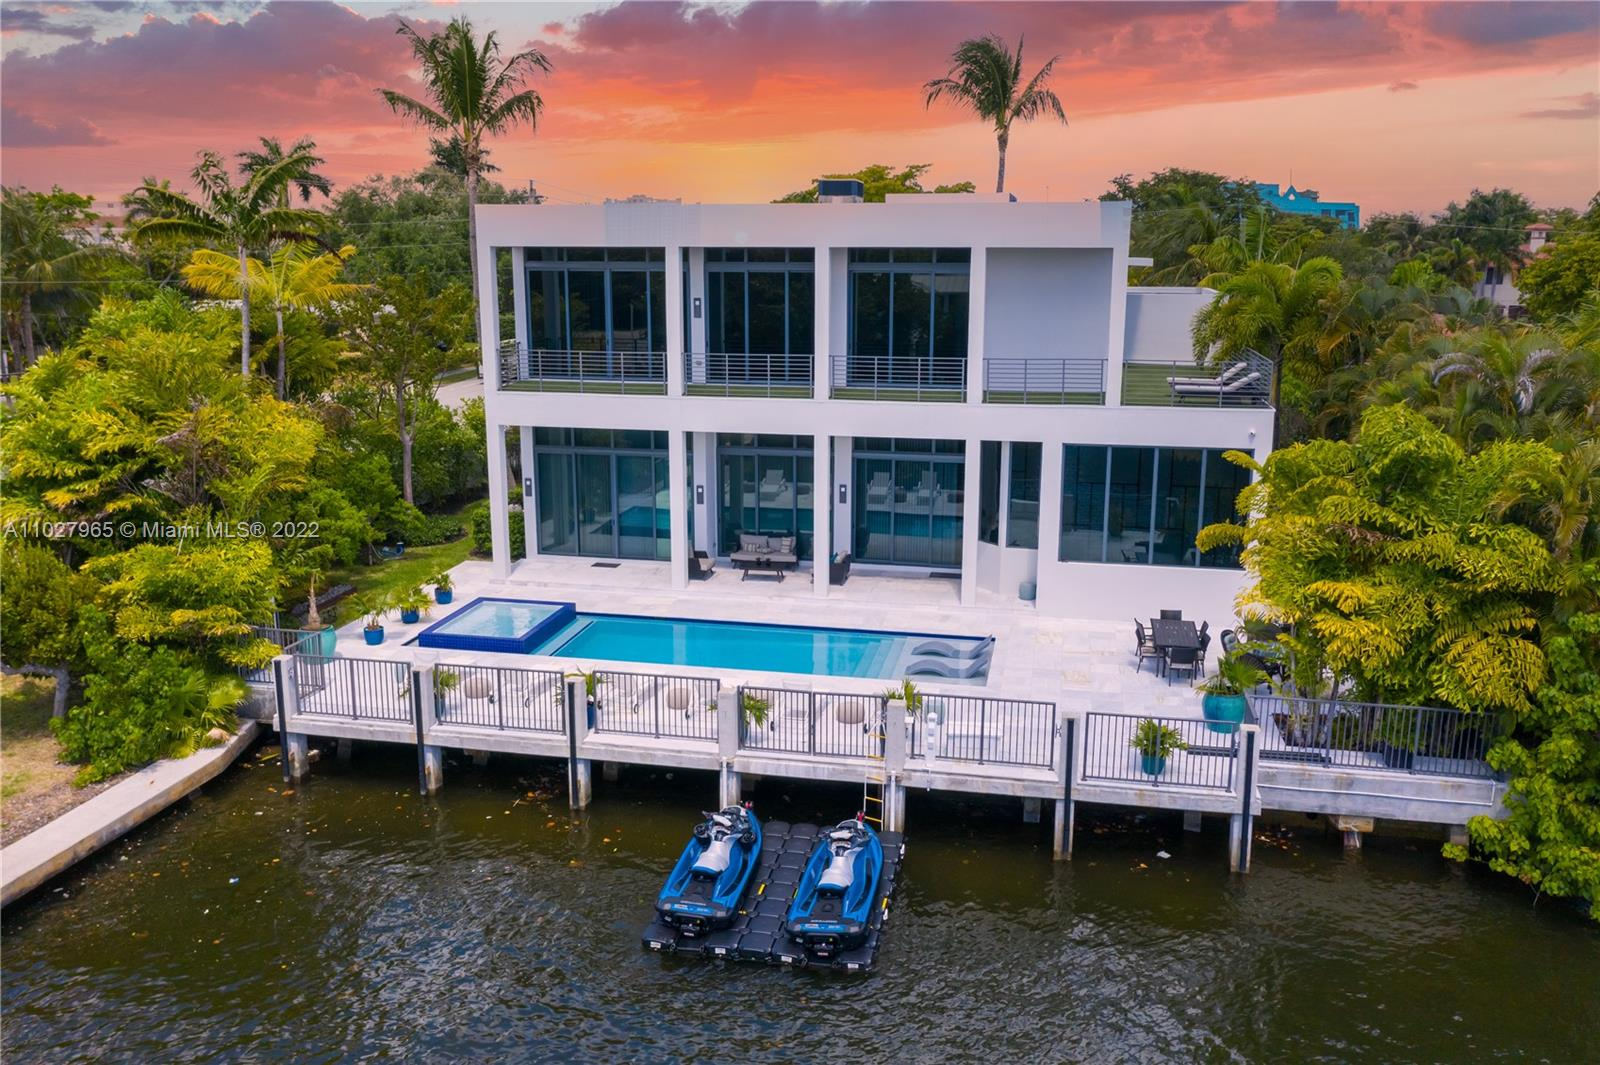 THIS IS AN ULTRA MODERN, CHIC, WATERFRONT HOME, FULLY FURNISHED, FULLY STOCKED WITH TOP OF THE LINE FINISHINGS AND CHEFS KITCHEN. JUST MINUTES AWAY FROM THE BEACH, BEACH PLACE AND AWARD WINNING RESTAURANTS & LAS OLAS. DOCK IS INCLUDED AS WELL. (SHORTER TERMS AVAILABLE... CALL LIST AGENT)